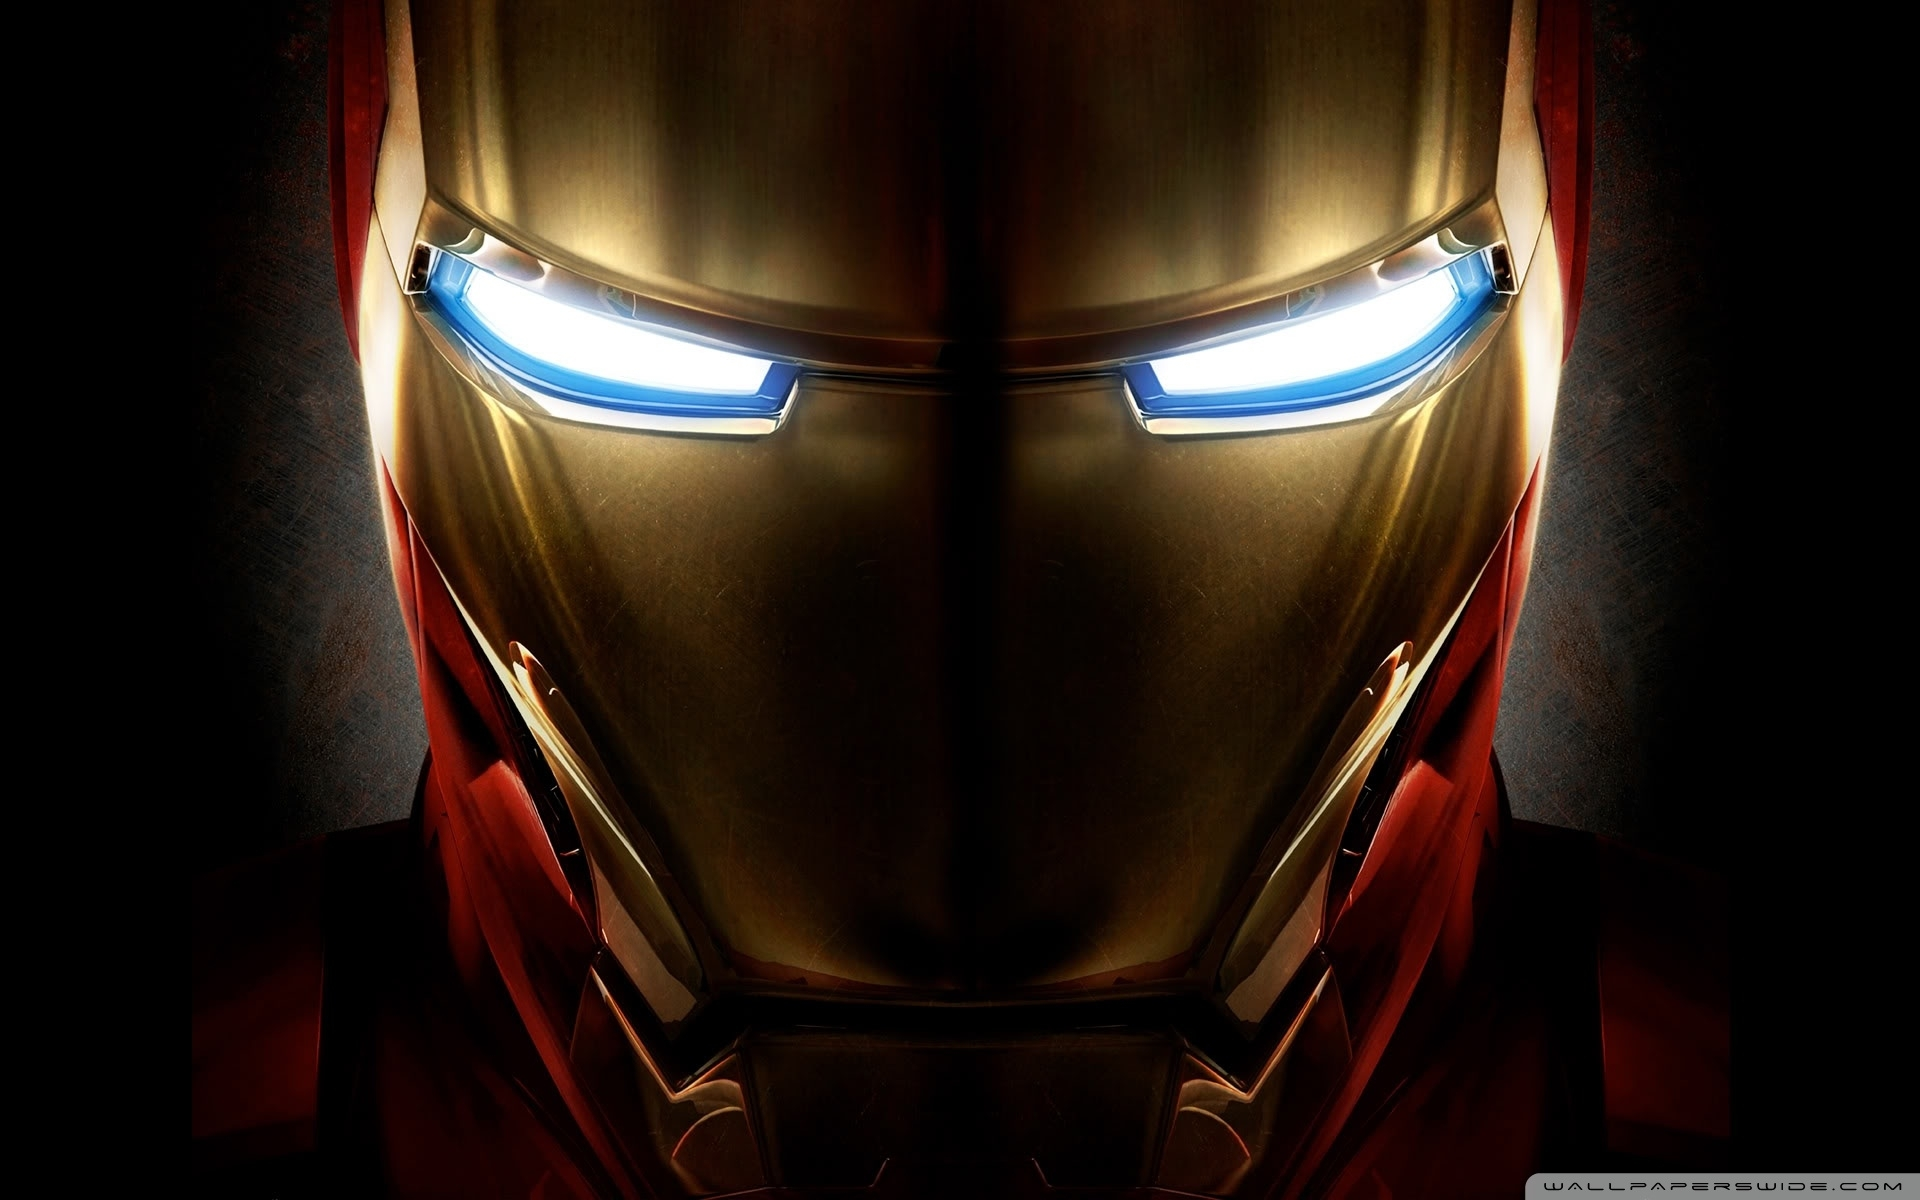 wallpaperswide ❤ iron man hd desktop wallpapers for 4k ultra